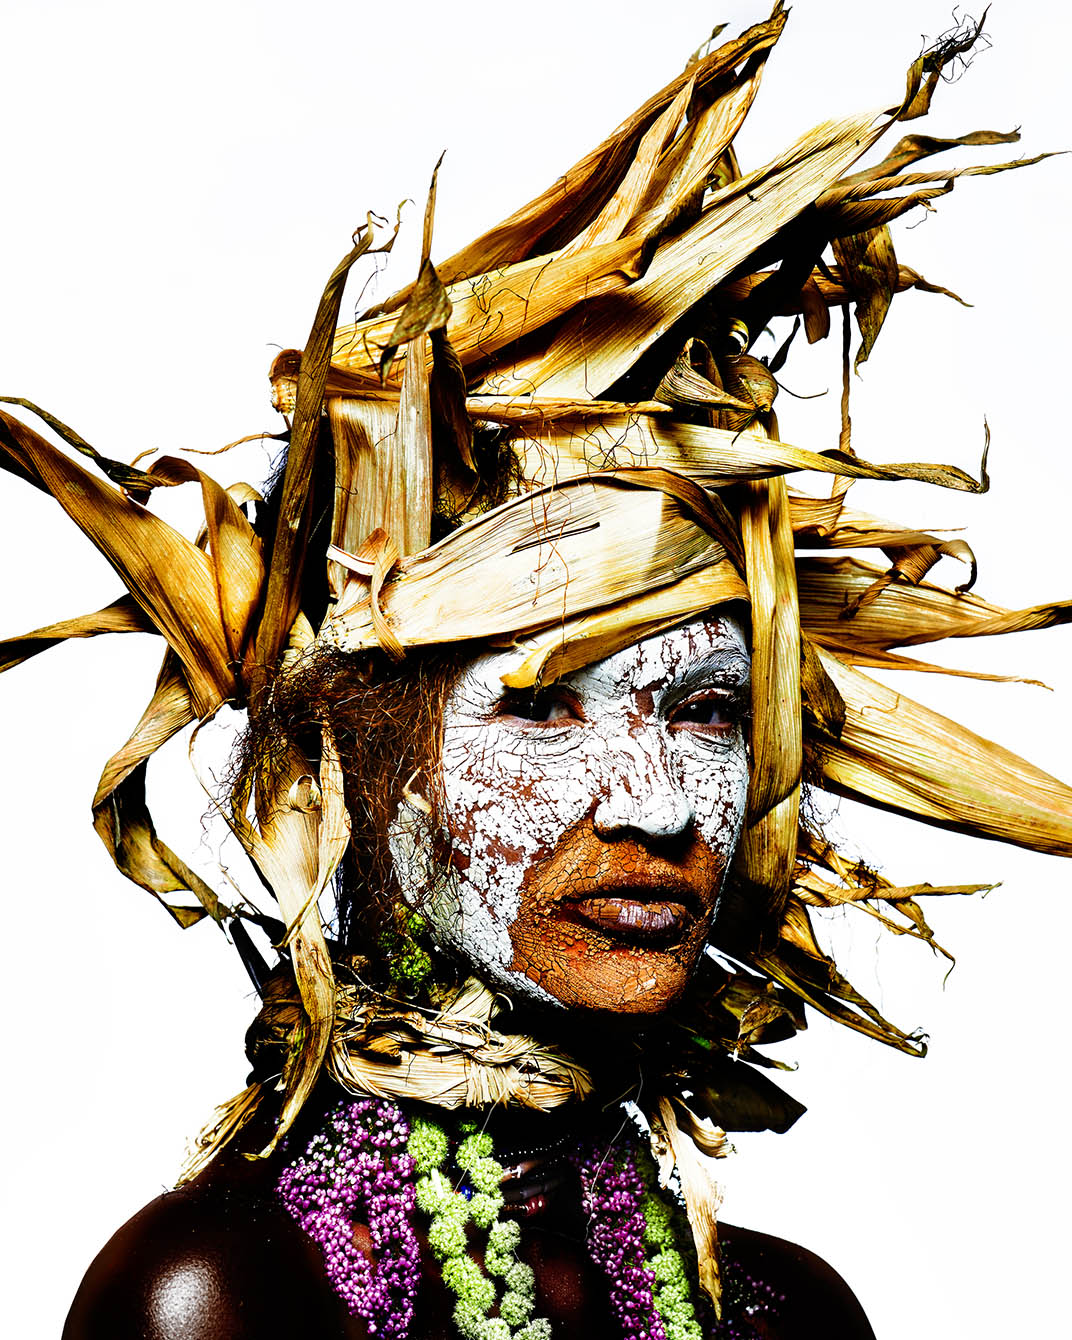 from Project Hair:  An Homage to the Artistry of the People of Omo Valley, Southern Ethiopia, Africa.